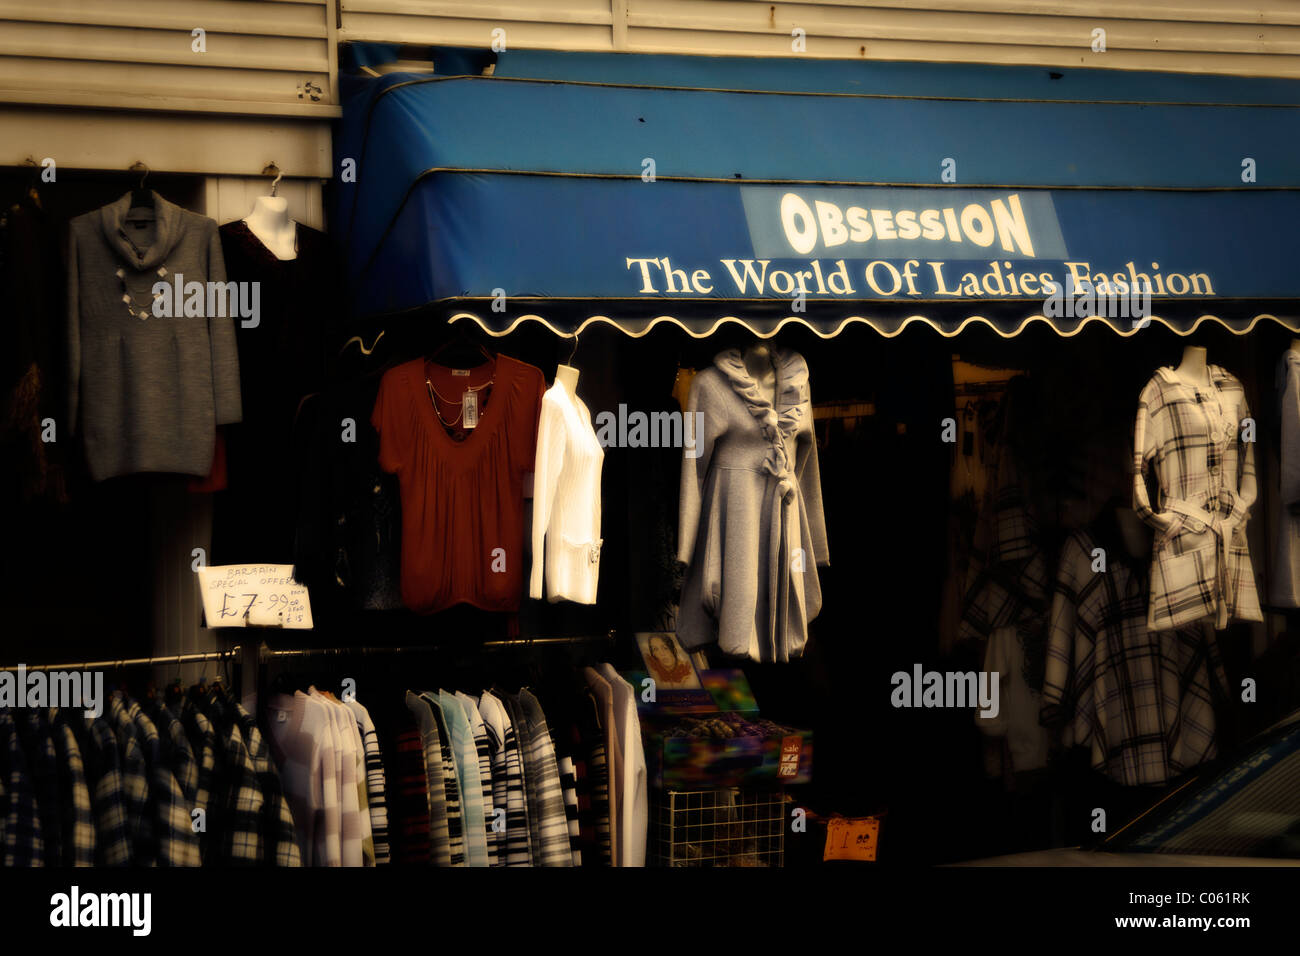 Obsession, Woman's fashion store in Blackpool - Stock Image